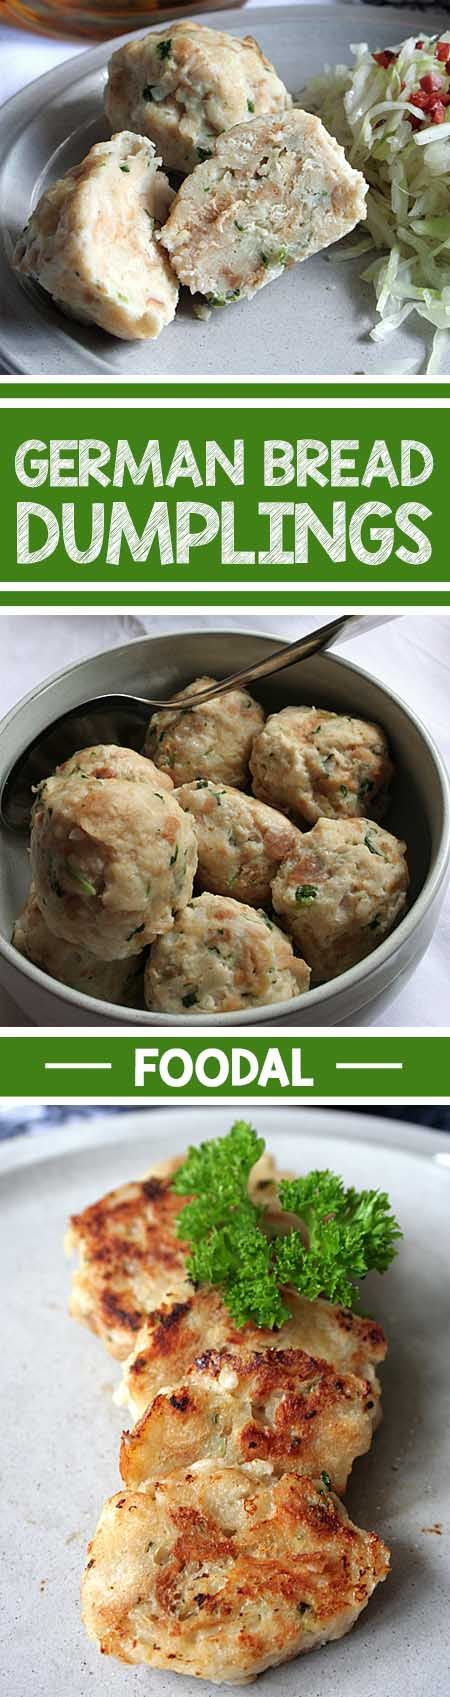 Use up day-old buns and bread in these famous Southern German dumplings, and enjoy a versatile side dish with any savory meal – at Oktoberfest, and beyond! This is a great way to add some Bavarian flair to your menu. Find the recipe here: http://foodal.com/recipes/german-recipes/bread-dumplings/